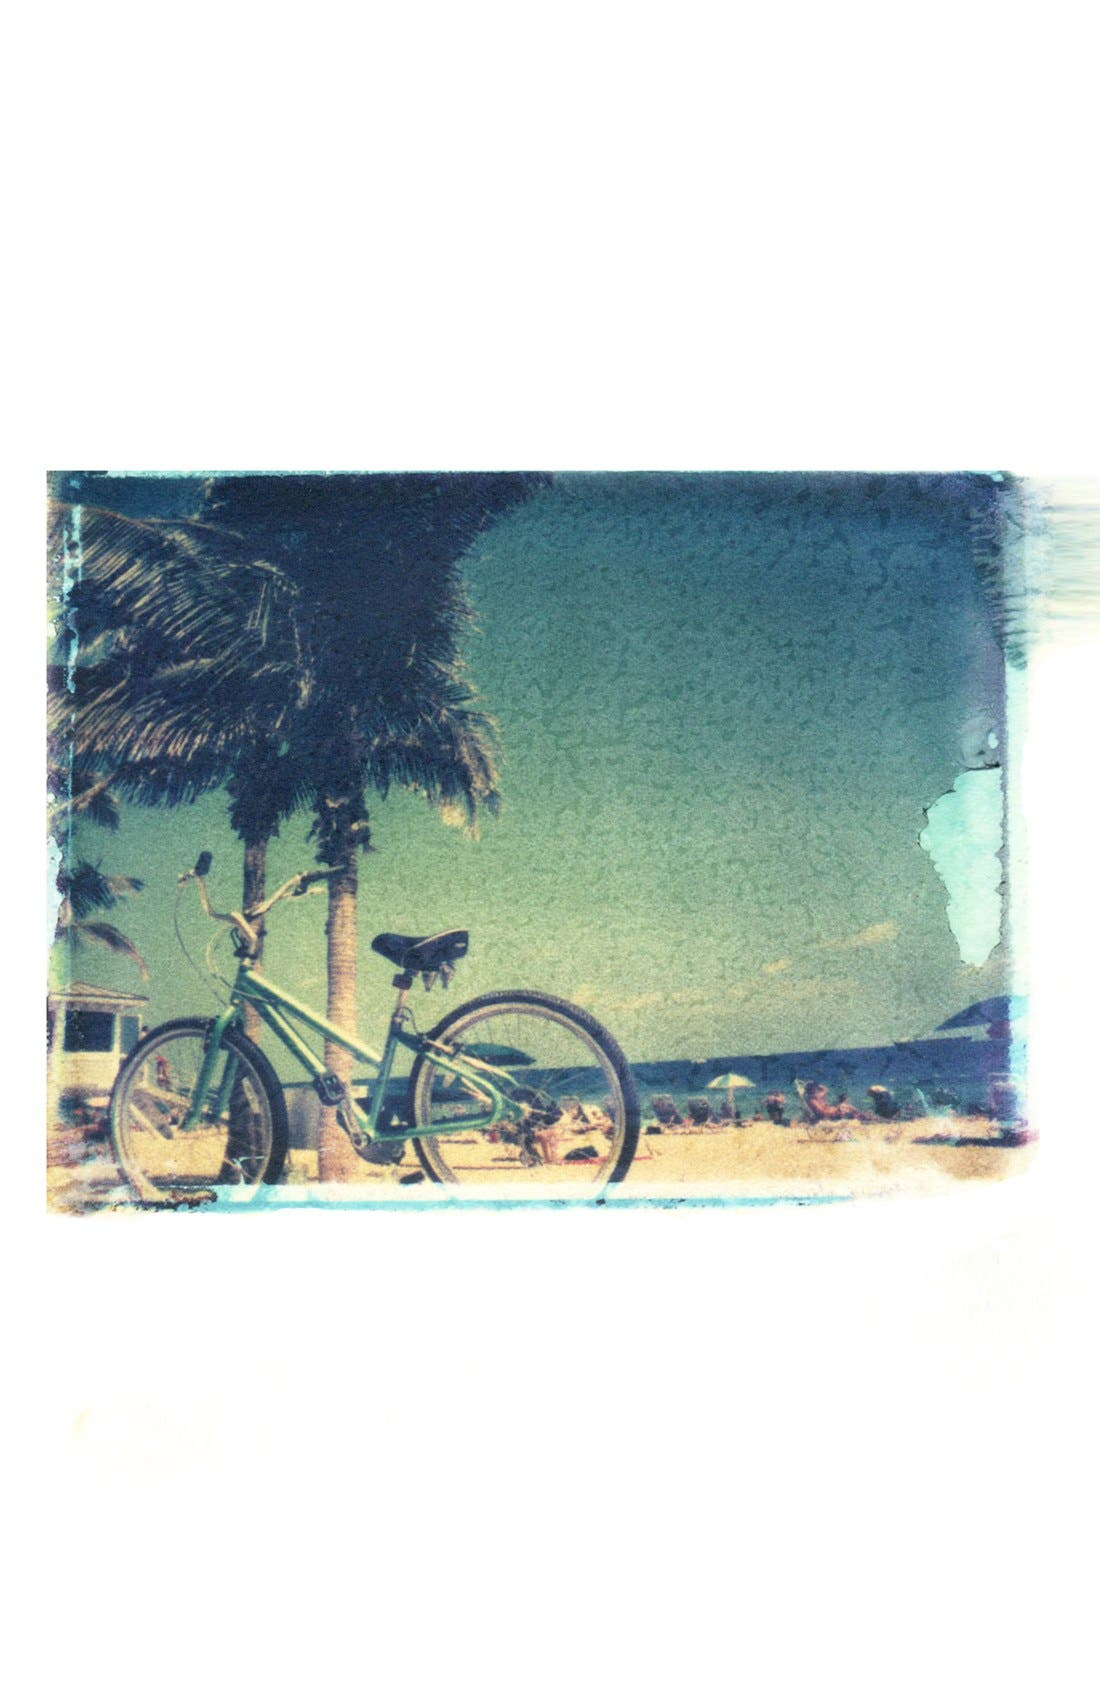 Alternate Image 1 Selected - She Hit Pause Studios 'Beach Bicycle' Wall Art